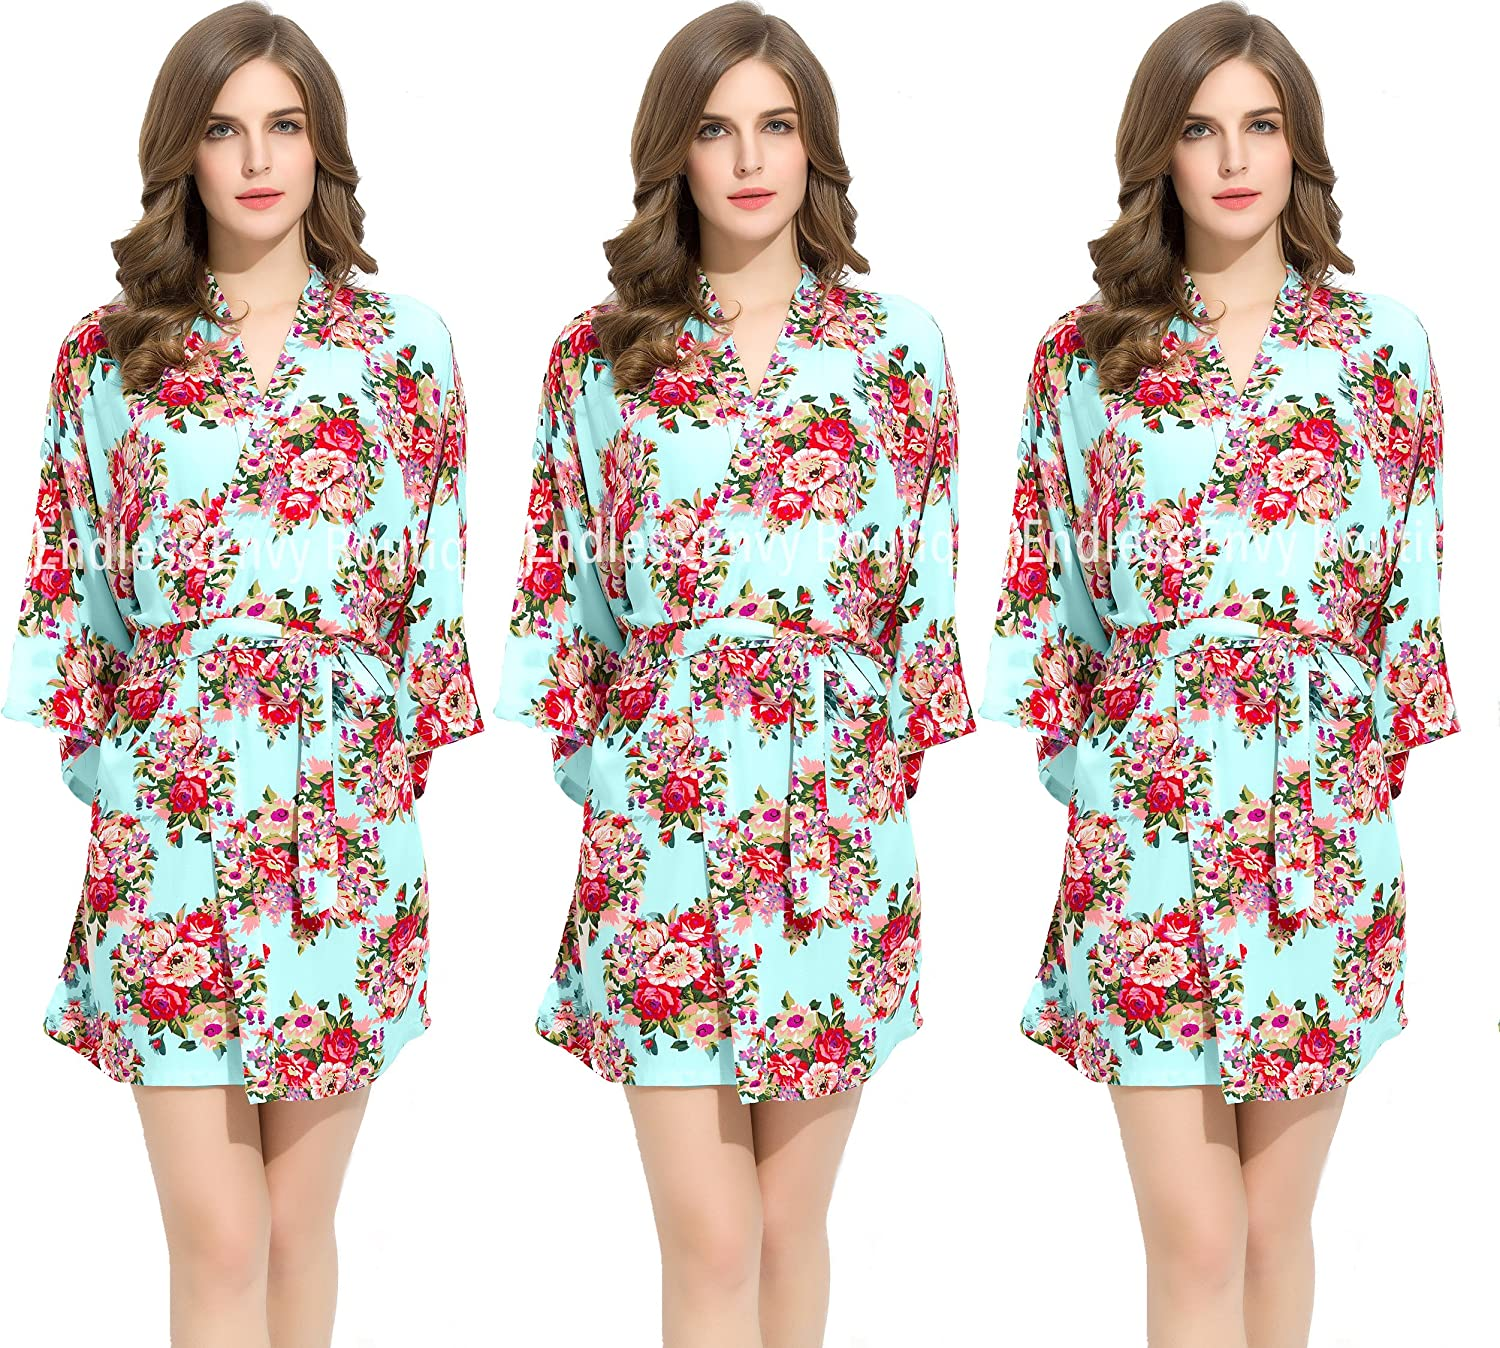 3 Mint Floral Cotton Bridesmaids Robes Wedding Bride Gifts by Endless Envy